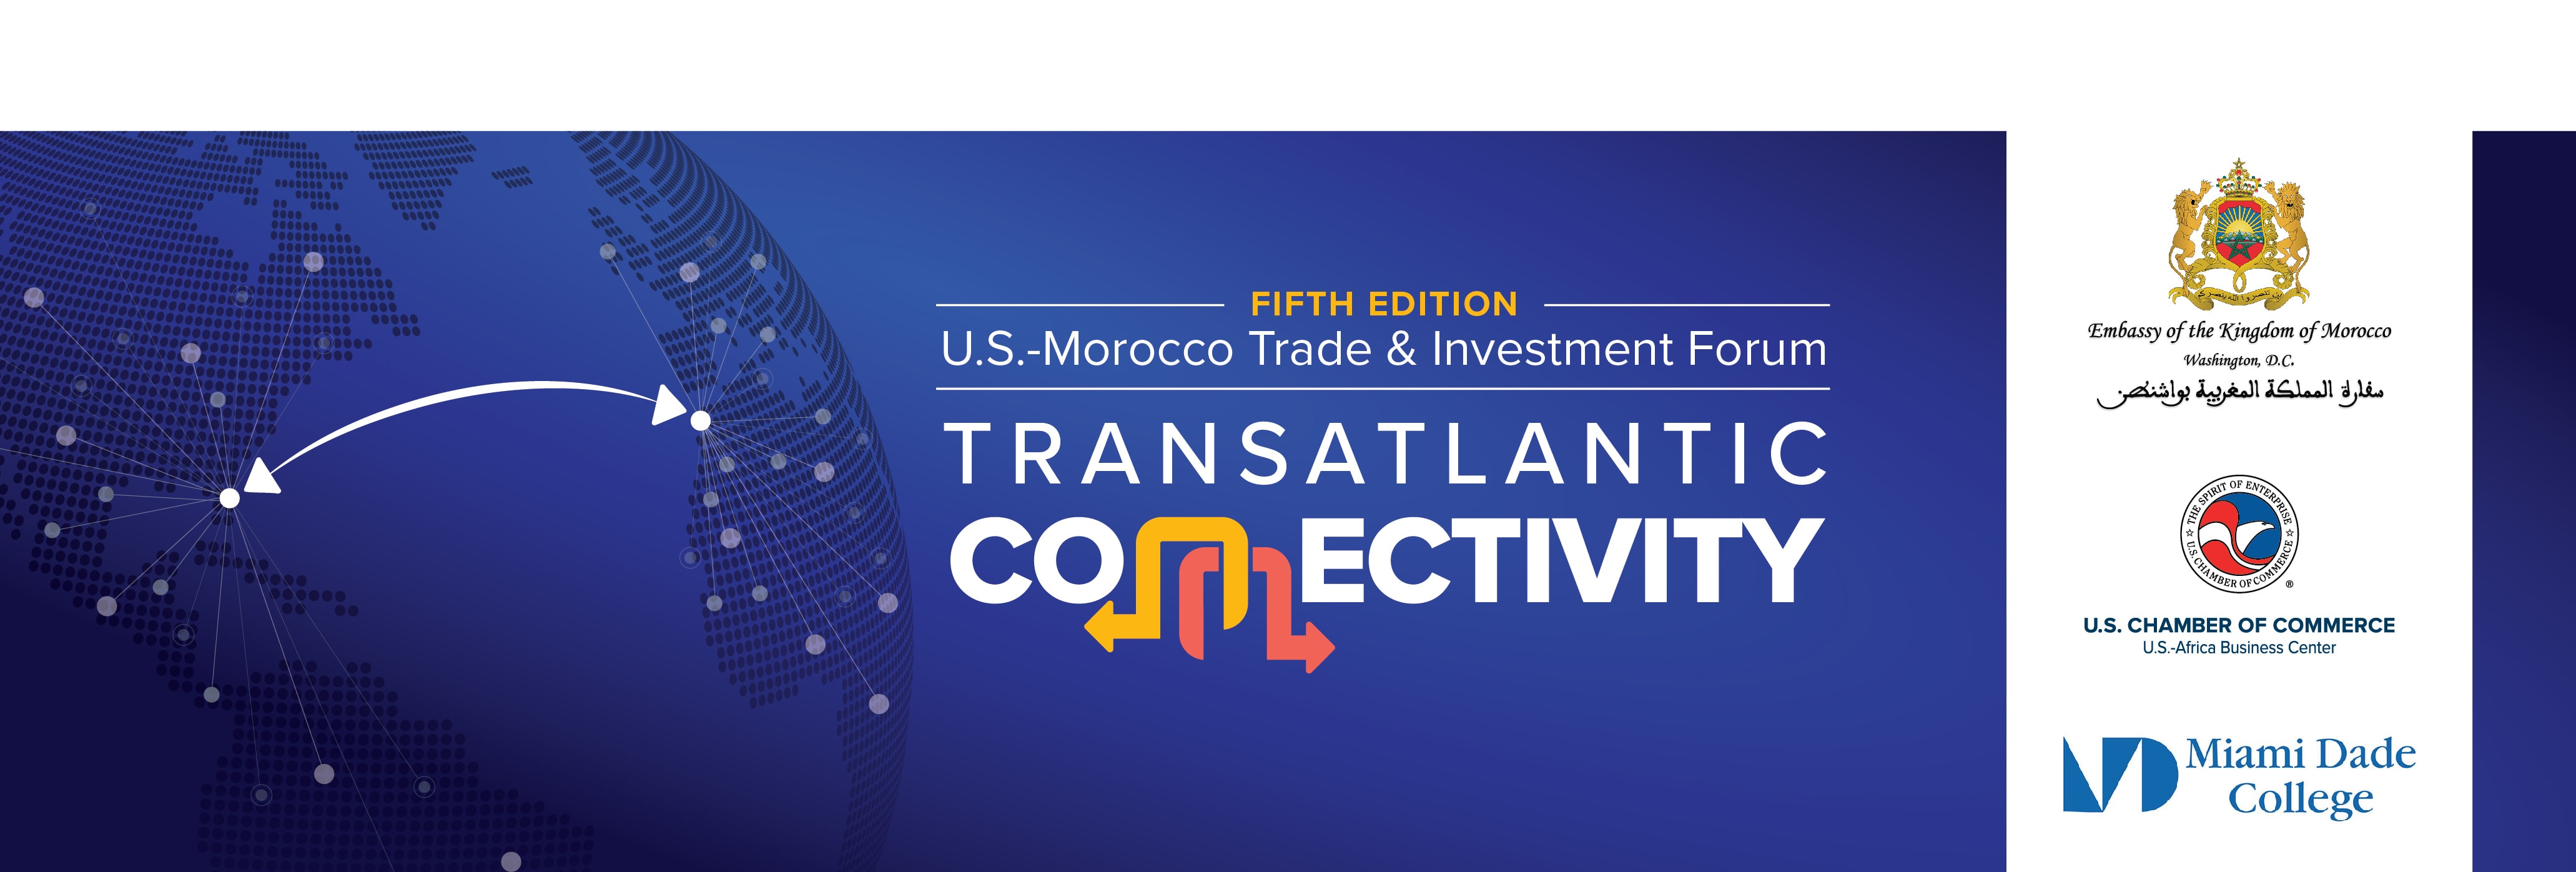 U.S.-Morocco Trade & Investment Forum 2019